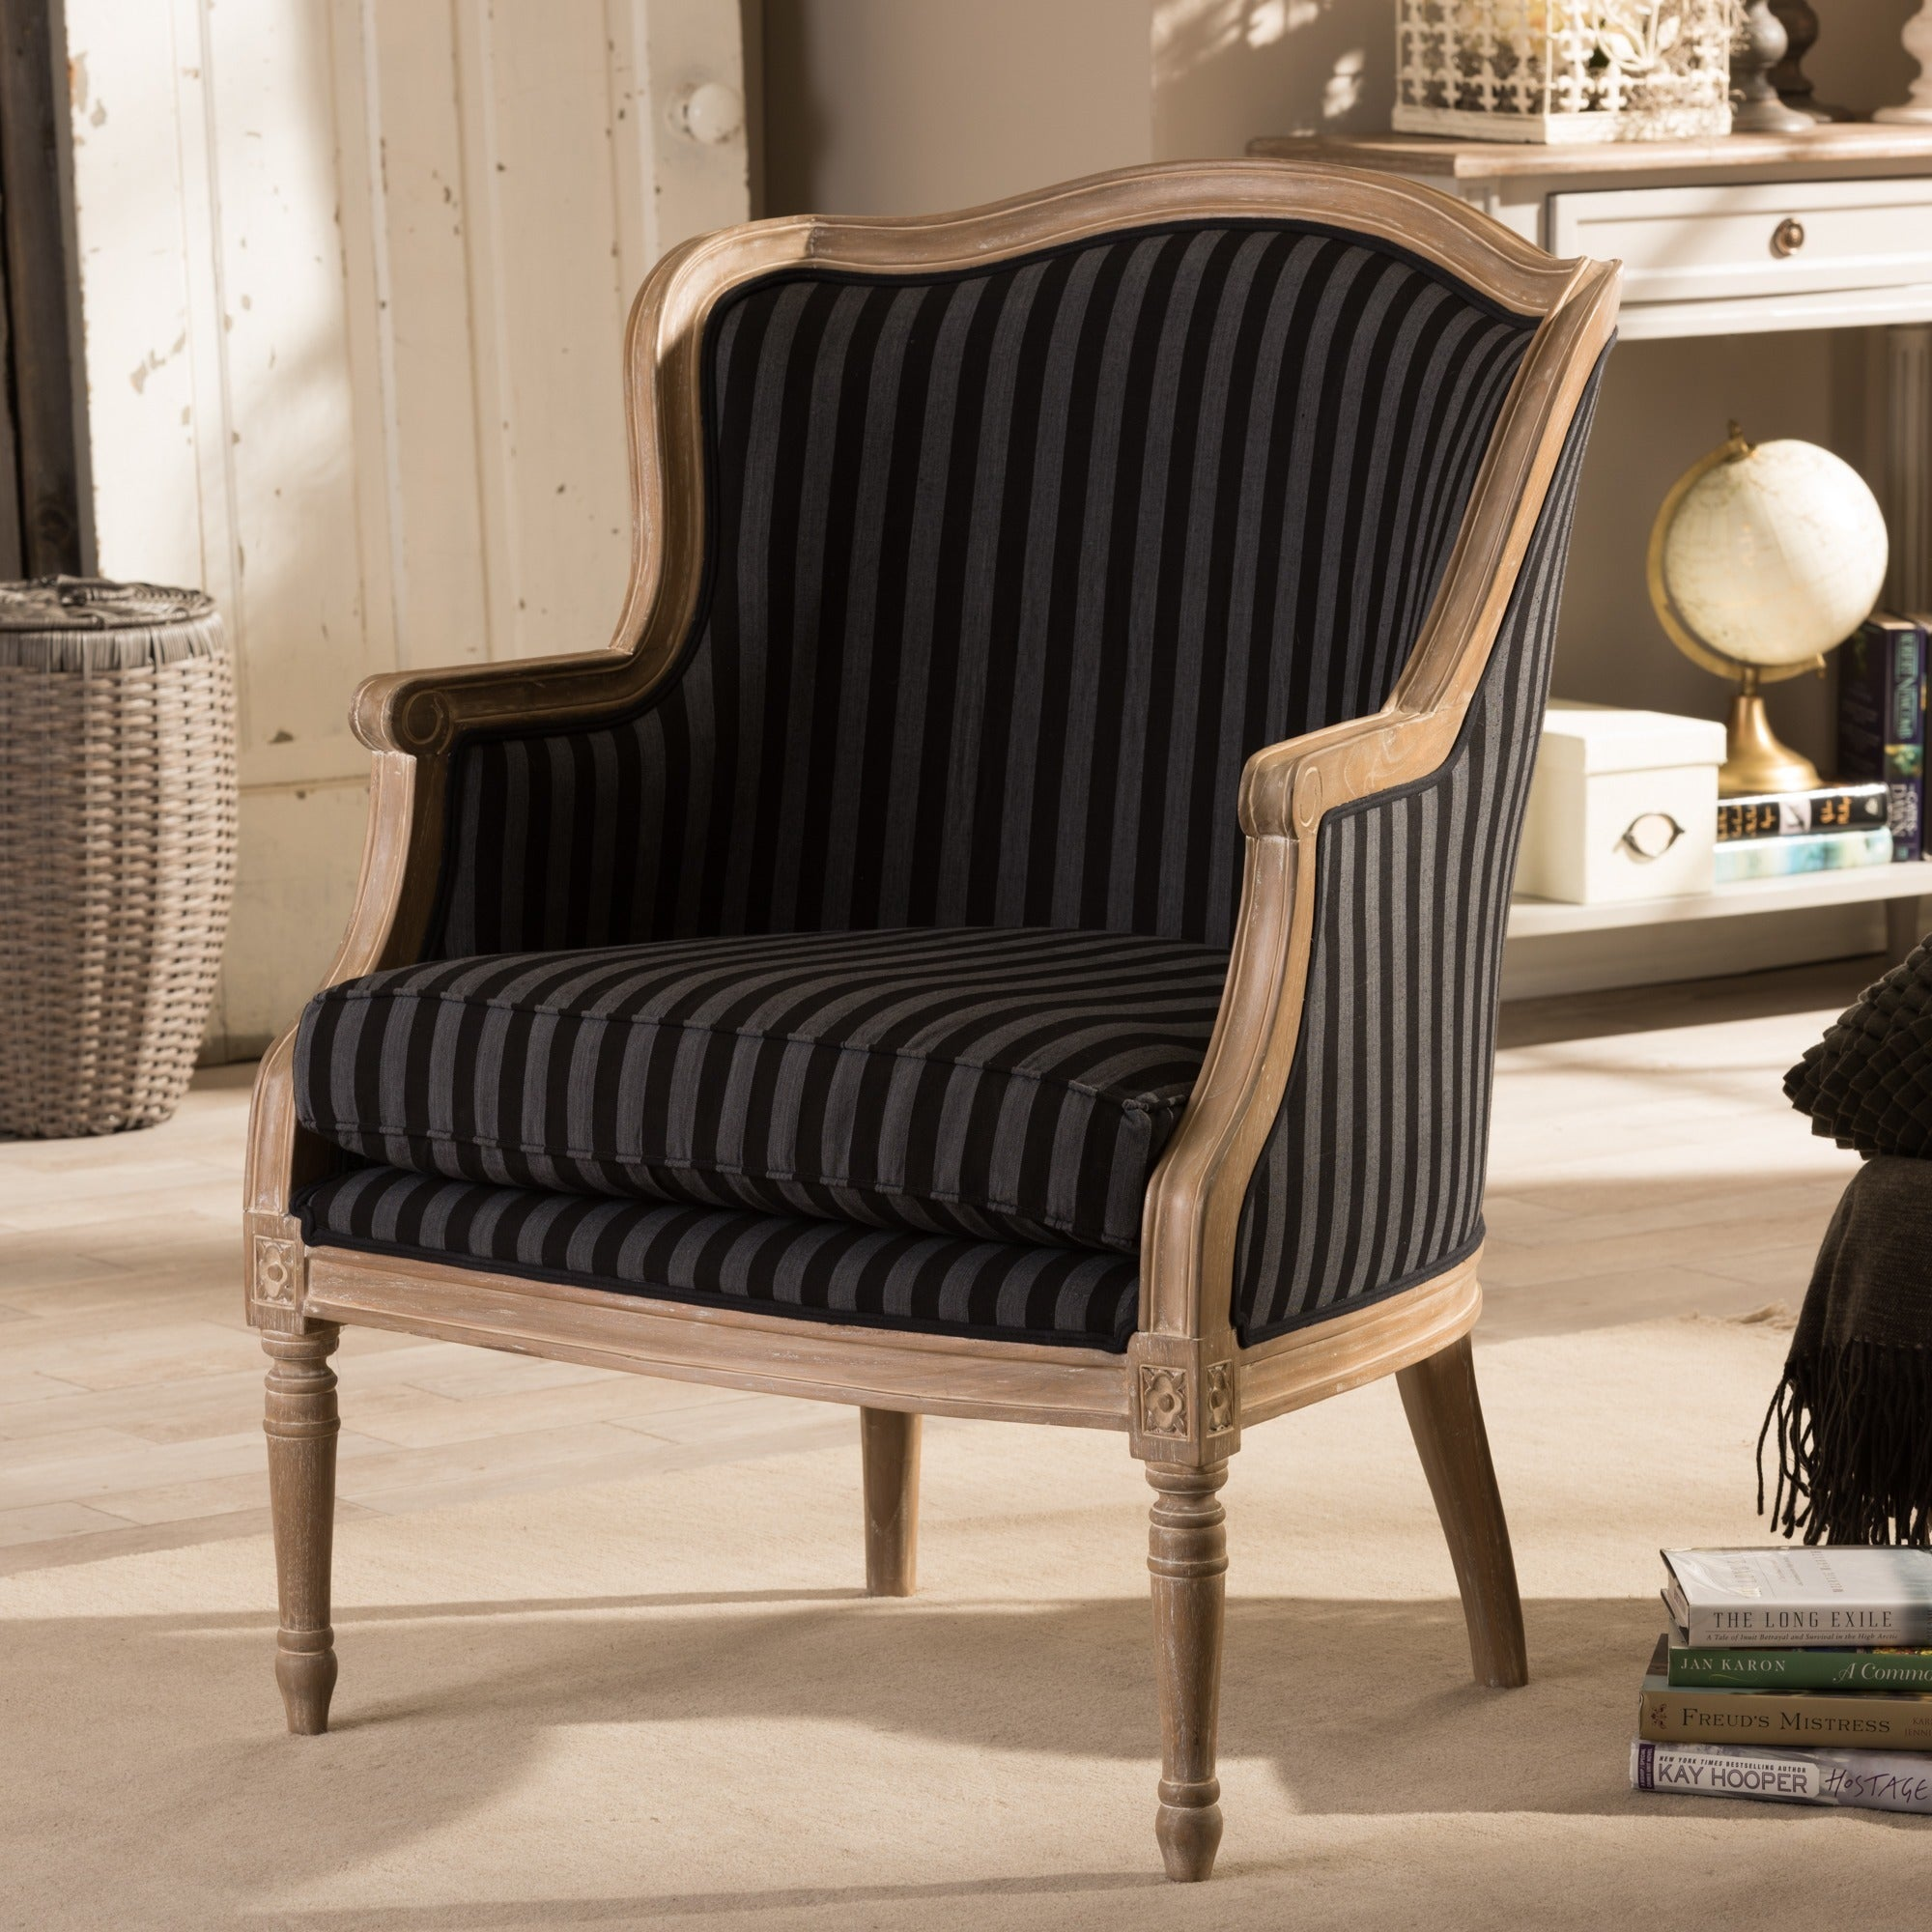 Surprising Baxton Studio Charlemagne Traditional French Black And Grey Striped Accent Chair Pabps2019 Chair Design Images Pabps2019Com